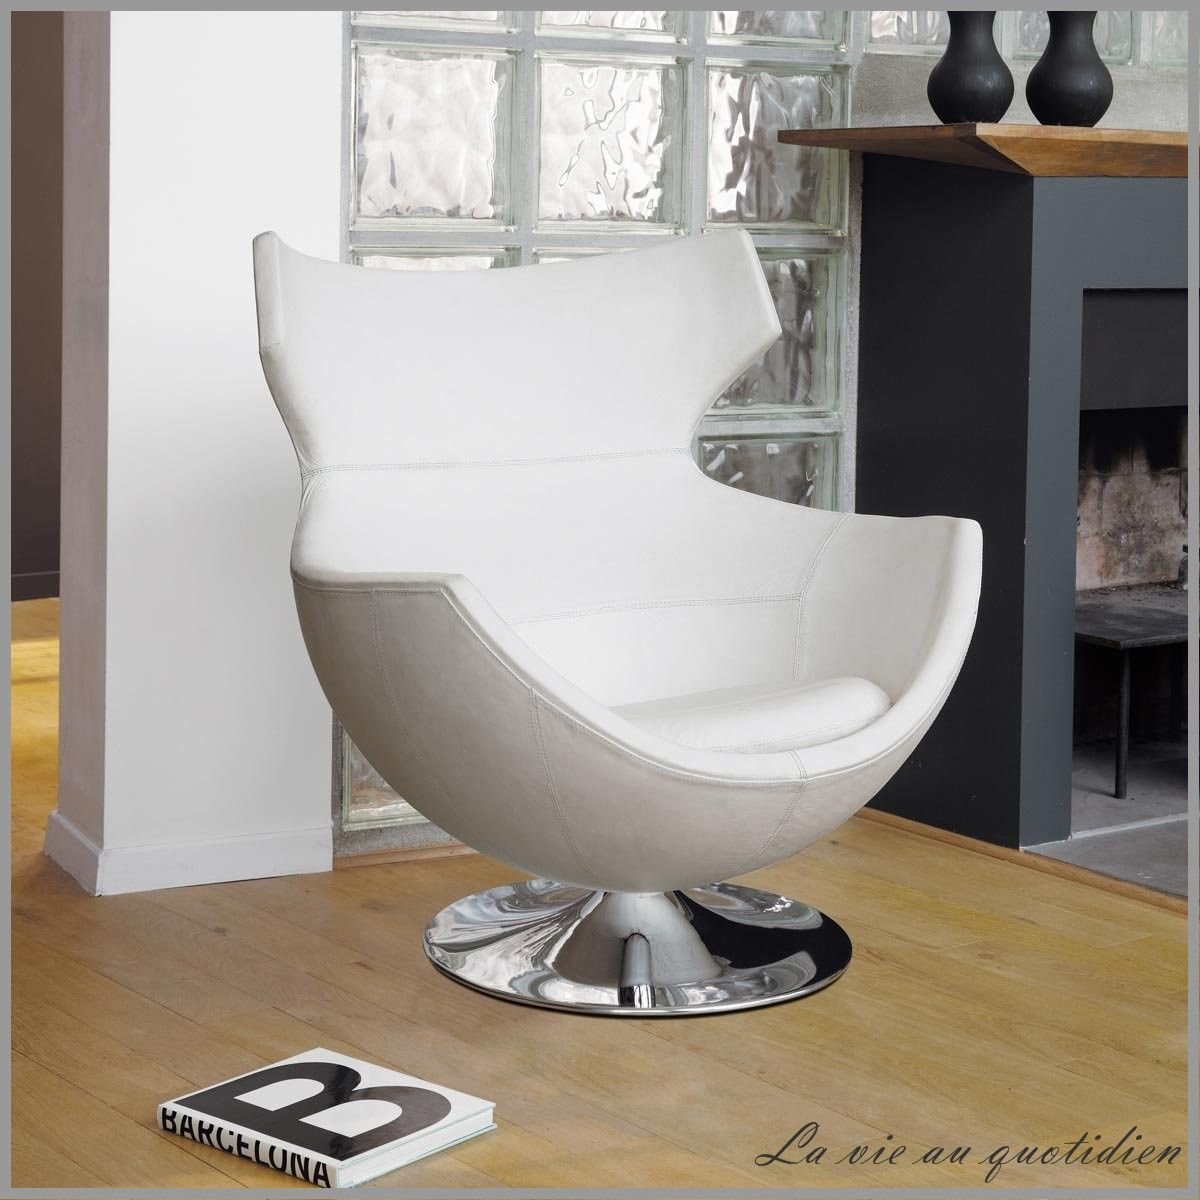 fauteuil rond pied metal pas cher fauteuils arrondis pinterest fauteuil rond d coration. Black Bedroom Furniture Sets. Home Design Ideas